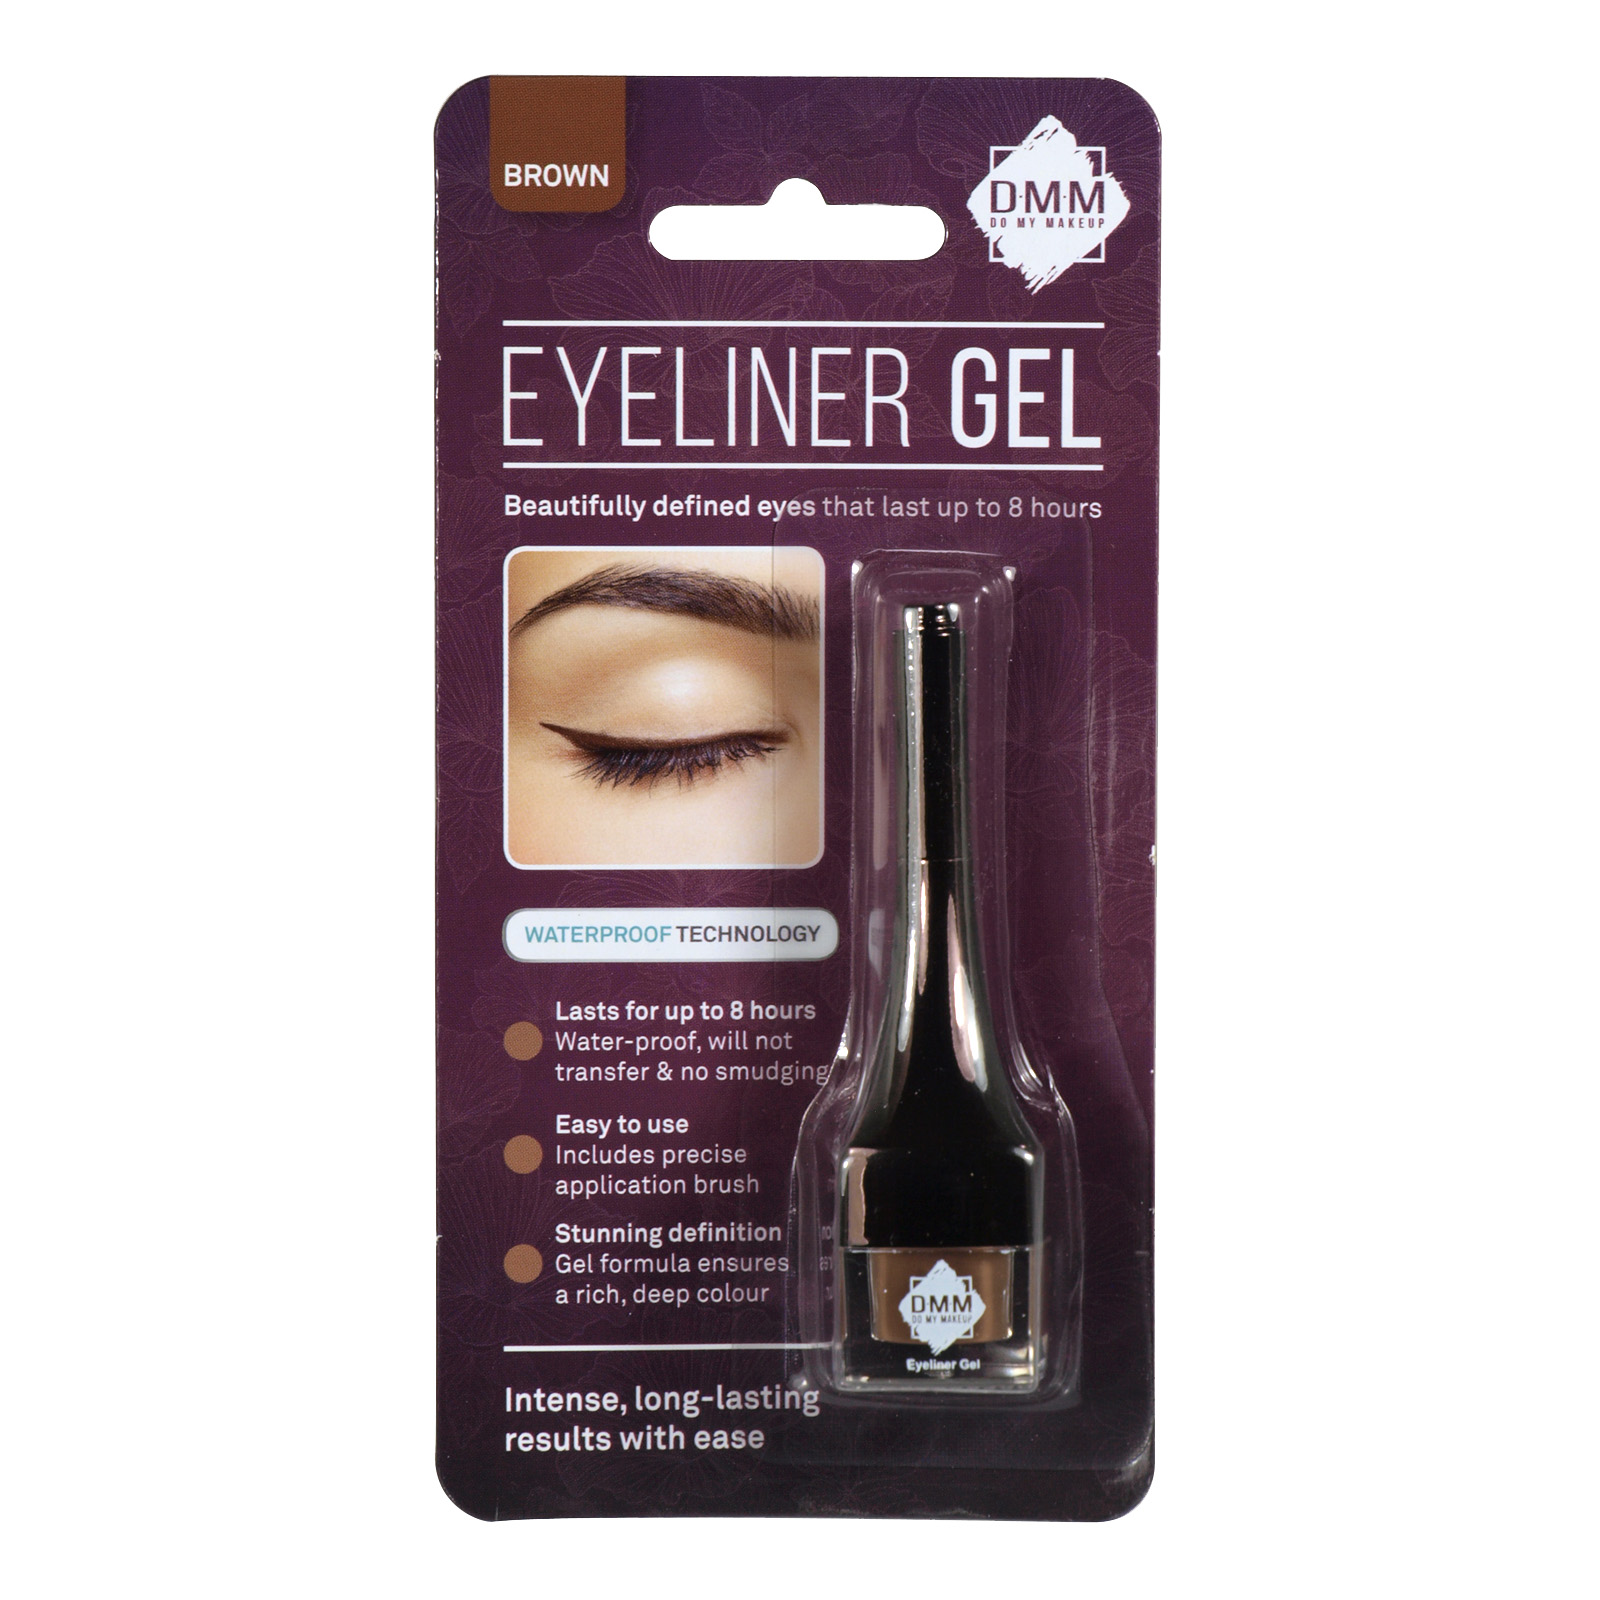 DMM EYELINER GEL BROWN